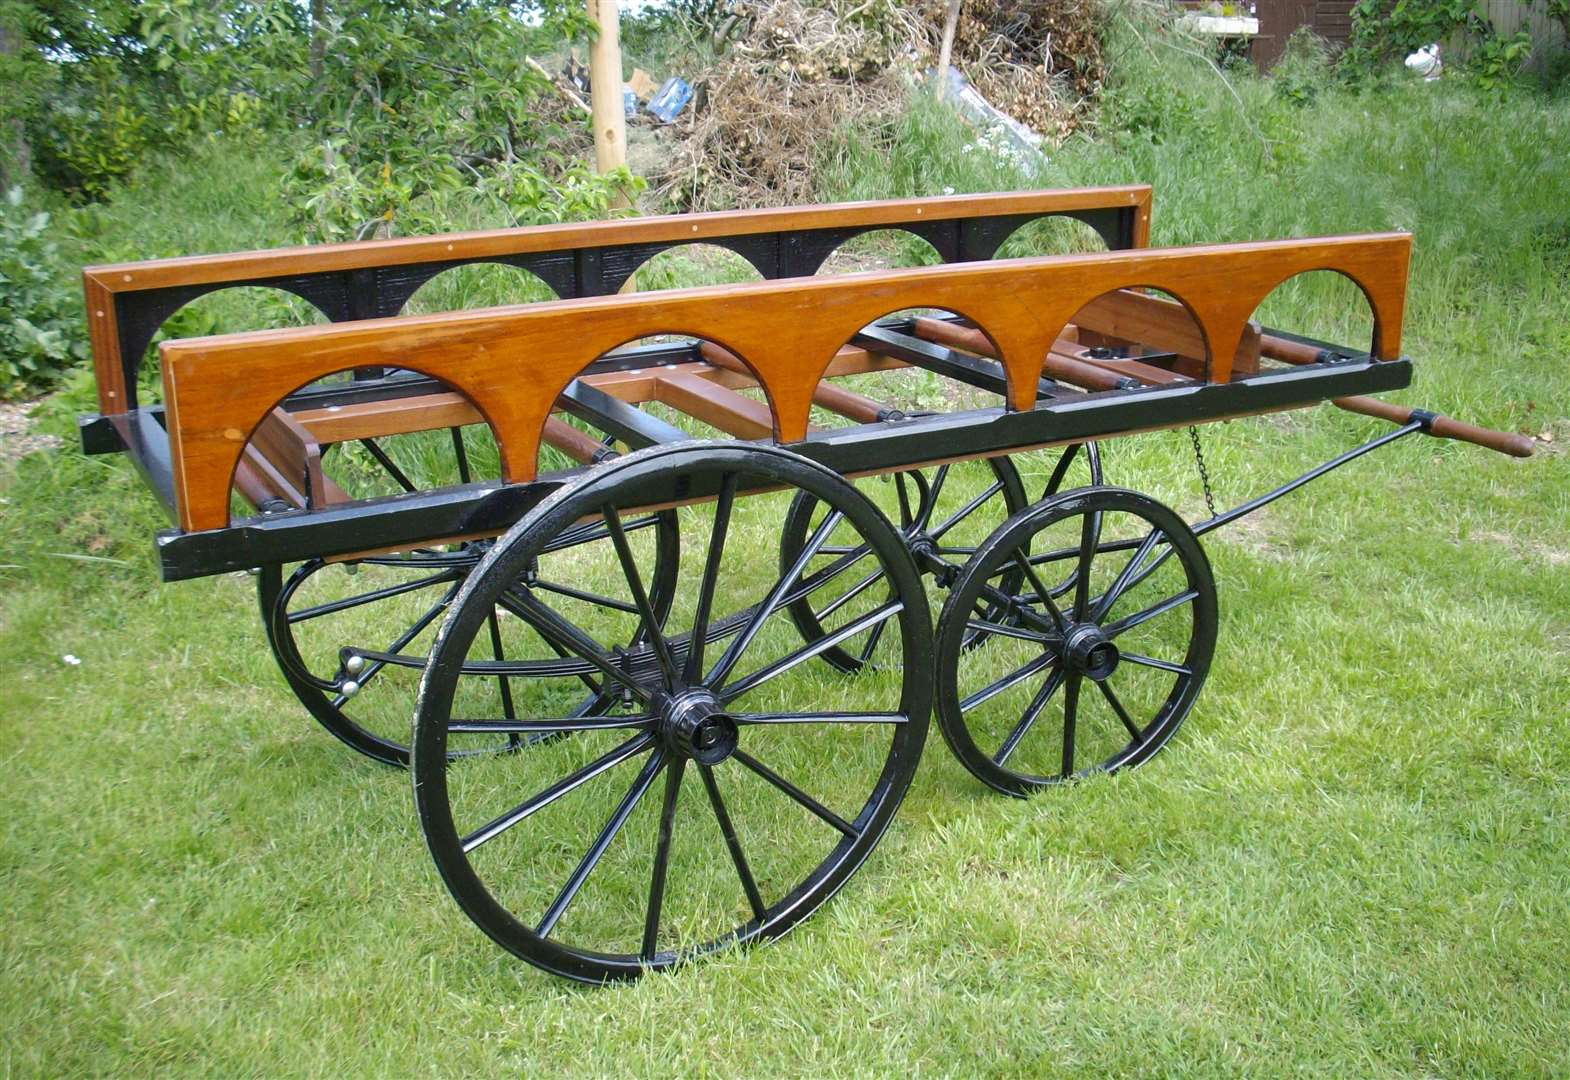 Peter's restored funeral bier to remain in Grantham